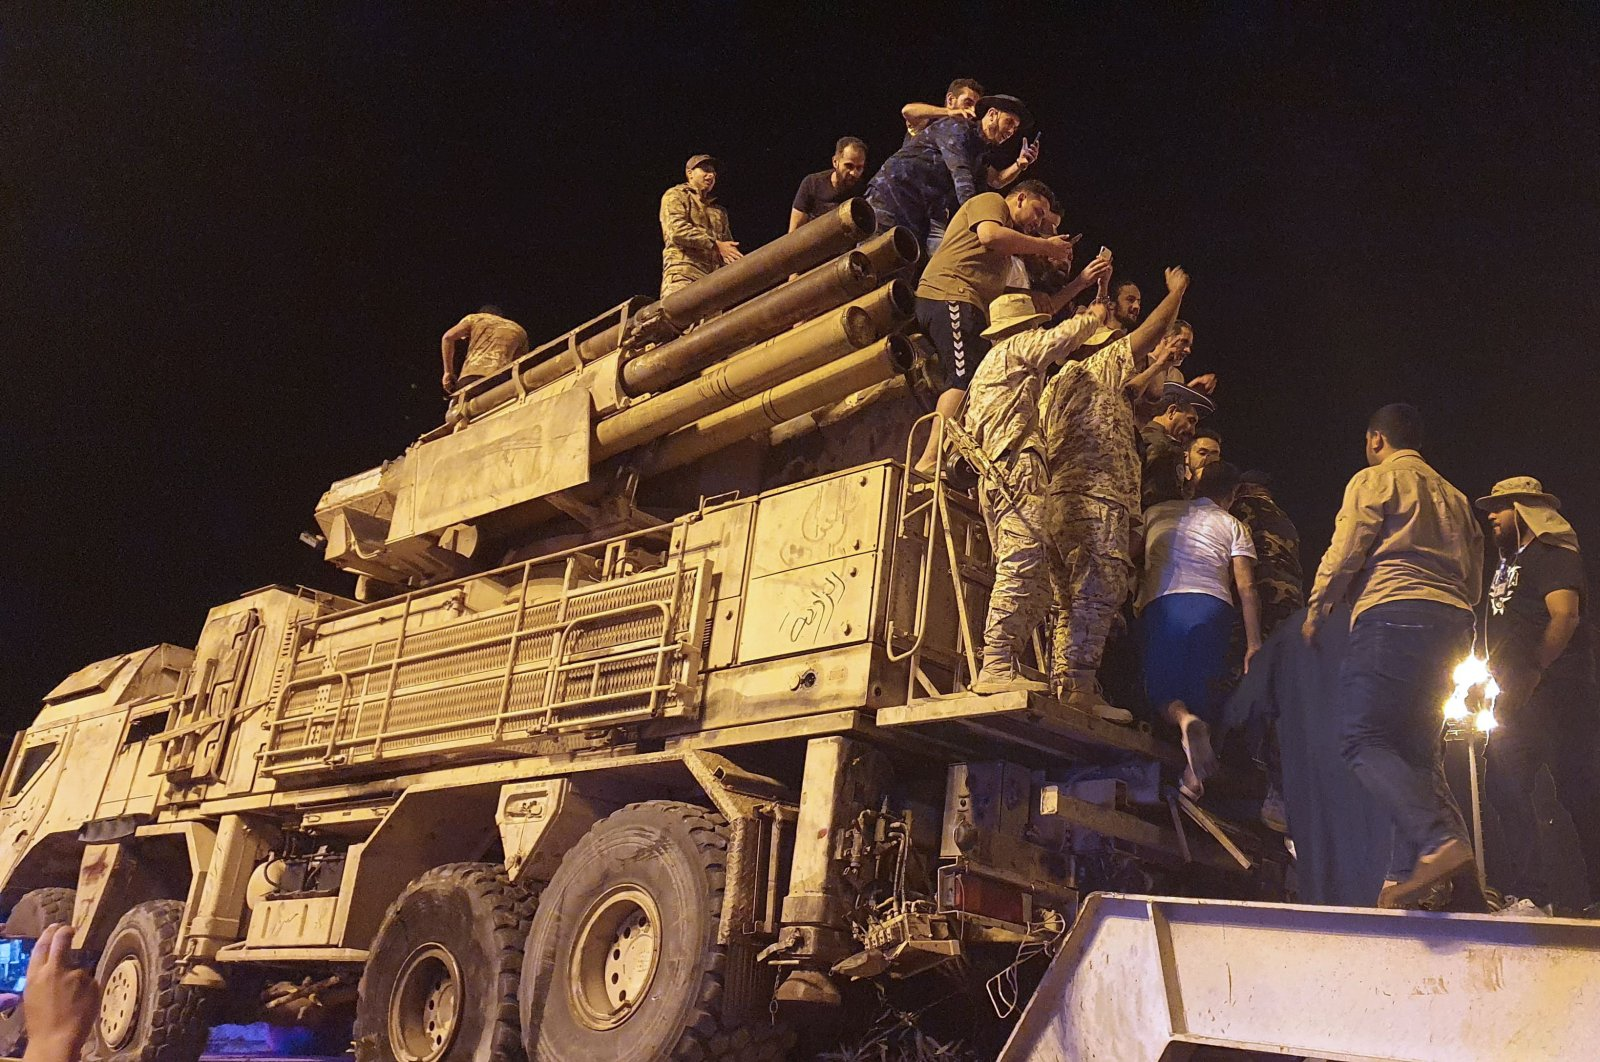 Forces loyal to Libya's U.N.-recognised Government of National Accord (GNA) parade a Pantsir air defense system truck in the capital Tripoli on May 20, 2020, after its capture at al-Watiya airbase (Okba Ibn Nafa airbase) from forces loyal to Libya's eastern-based strongman Khalifa Haftar. (AFP Photo)